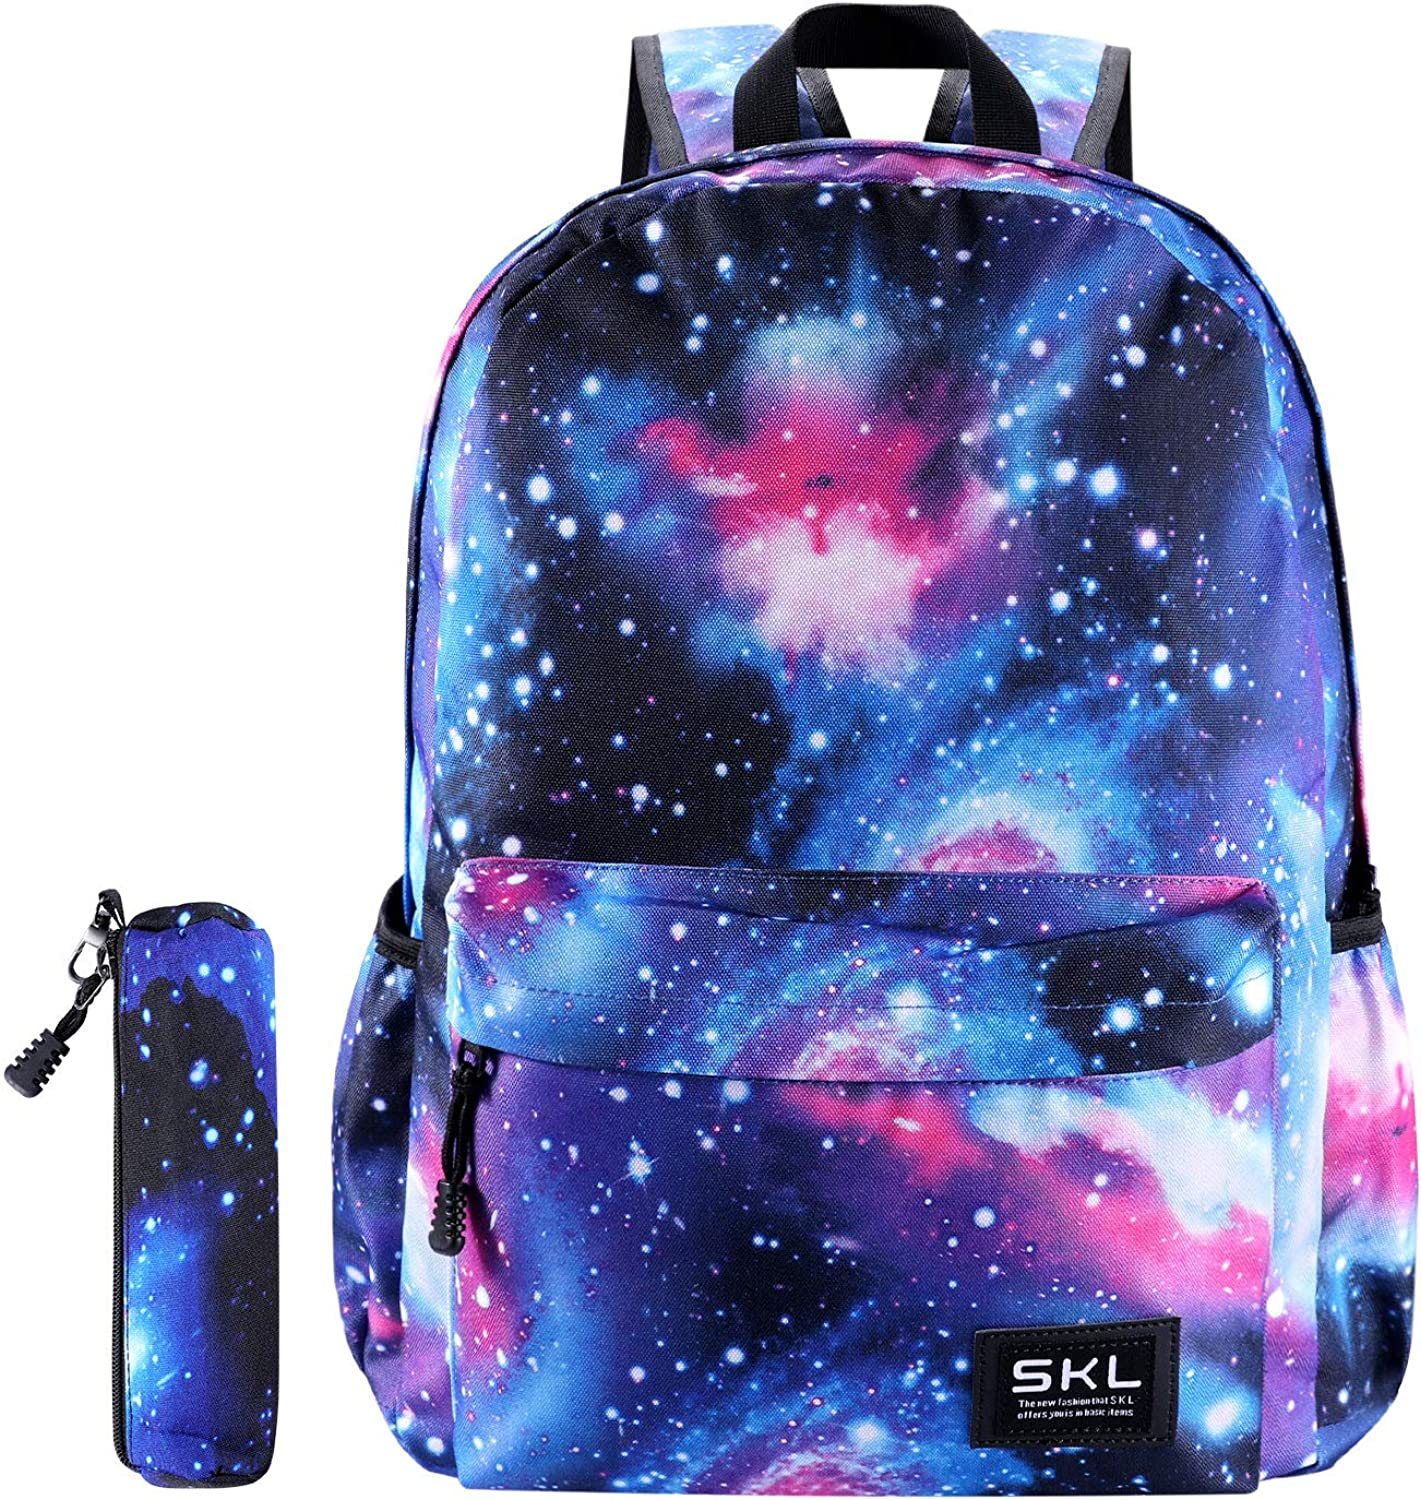 Galaxy School Backpack Bookbag Casual Daypack Travel Laptop Backpack for Girls Women Teenagers